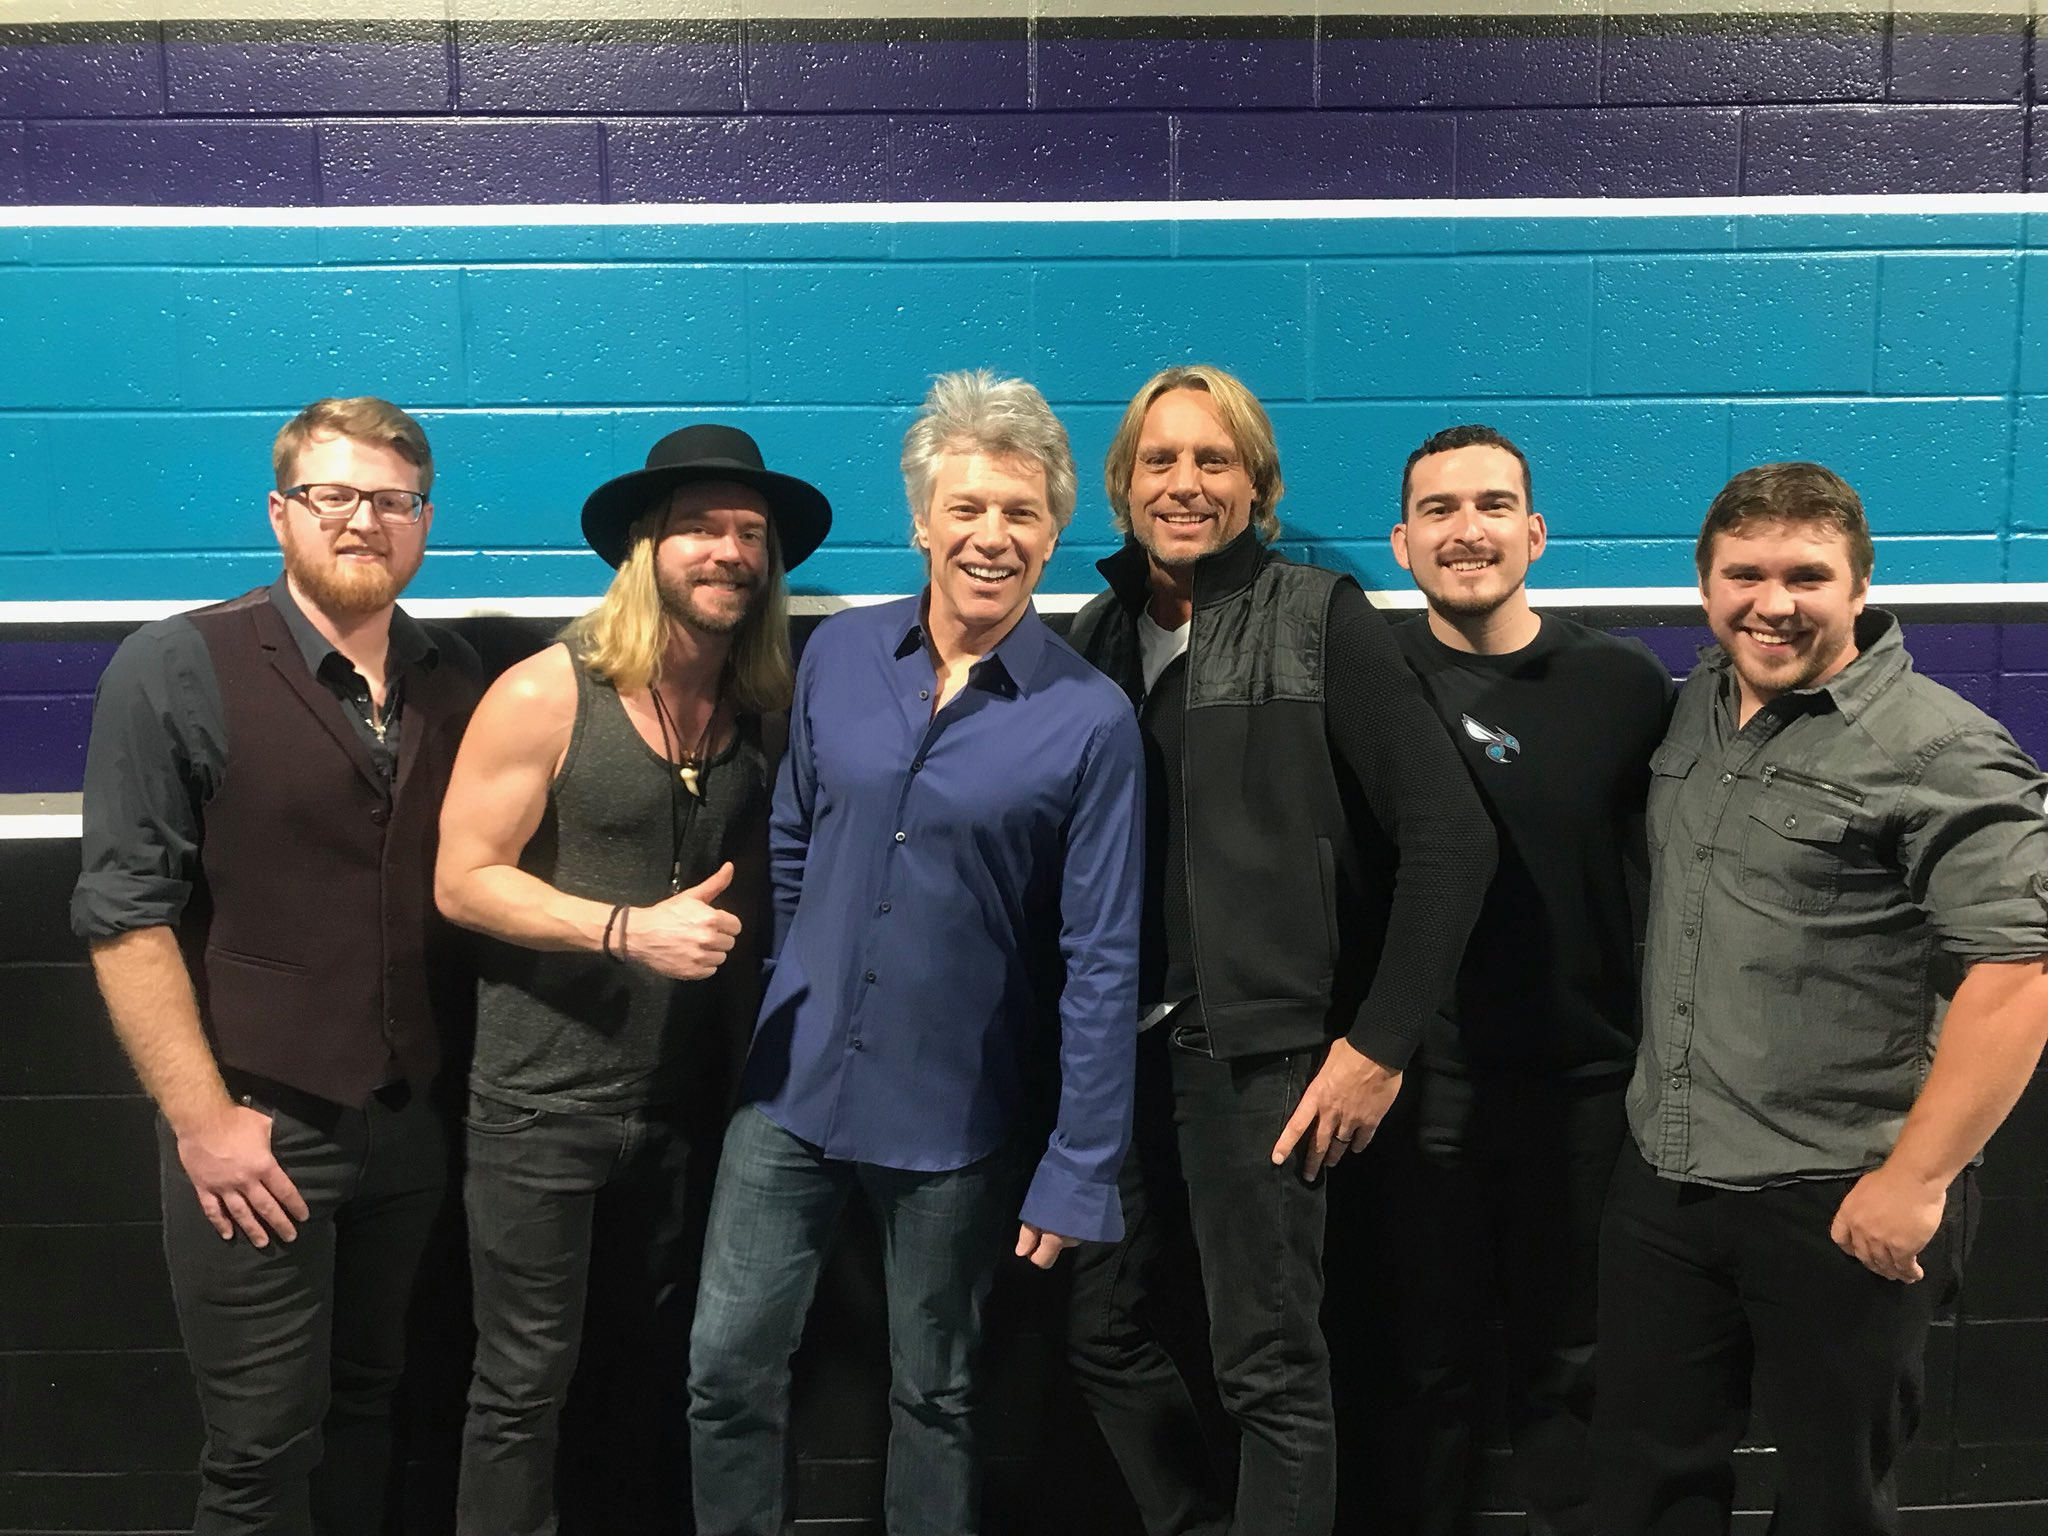 Thanks for coming out last weekend, Charlotte! JBJ with opening act, @MichaelTracy1! #THINFStour https://t.co/GGPKMagyML